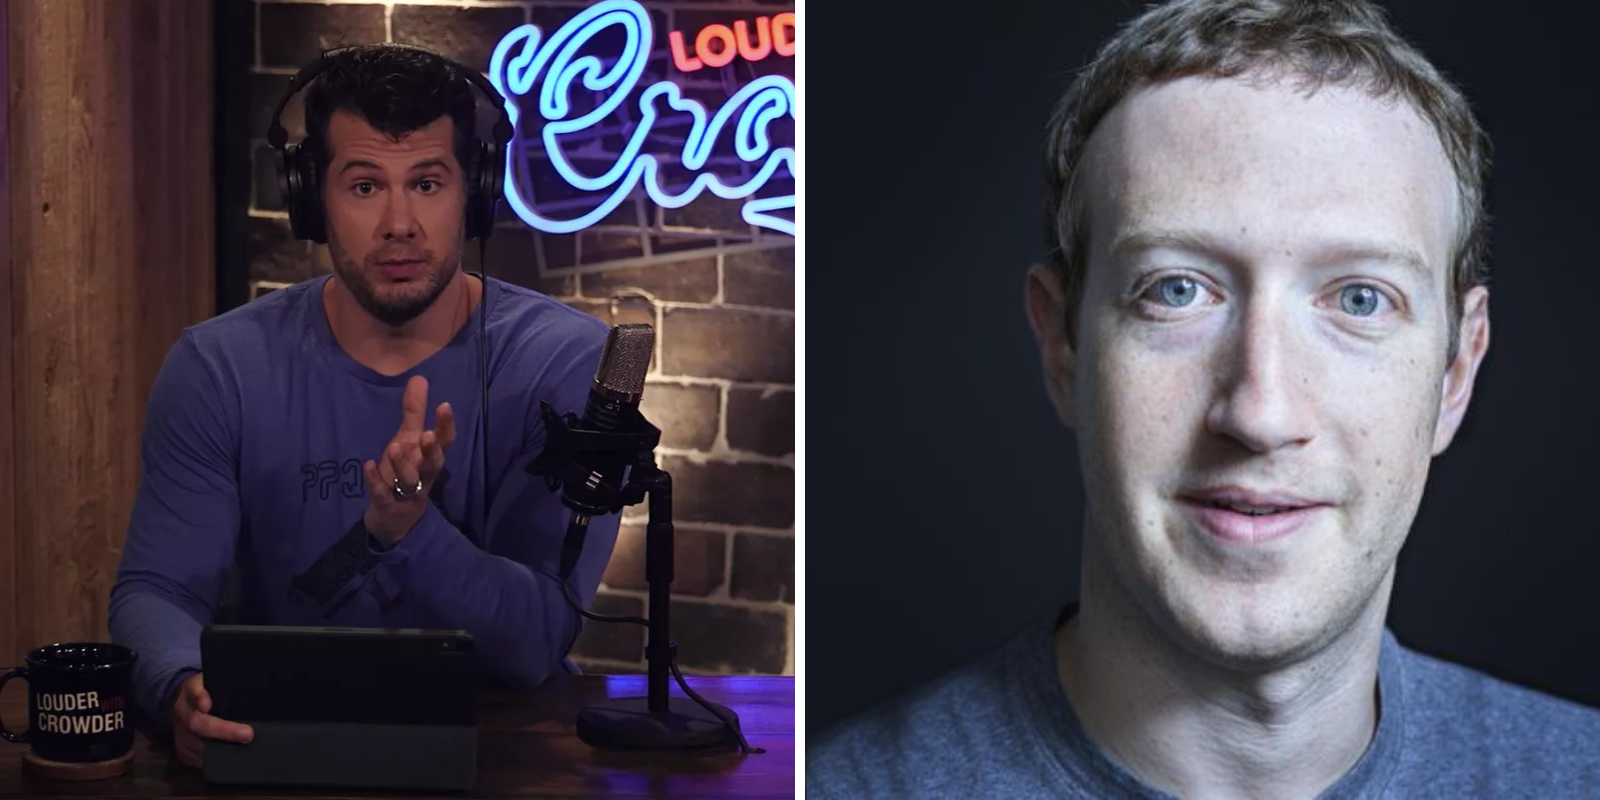 BREAKING: Steven Crowder announces lawsuit against Facebook